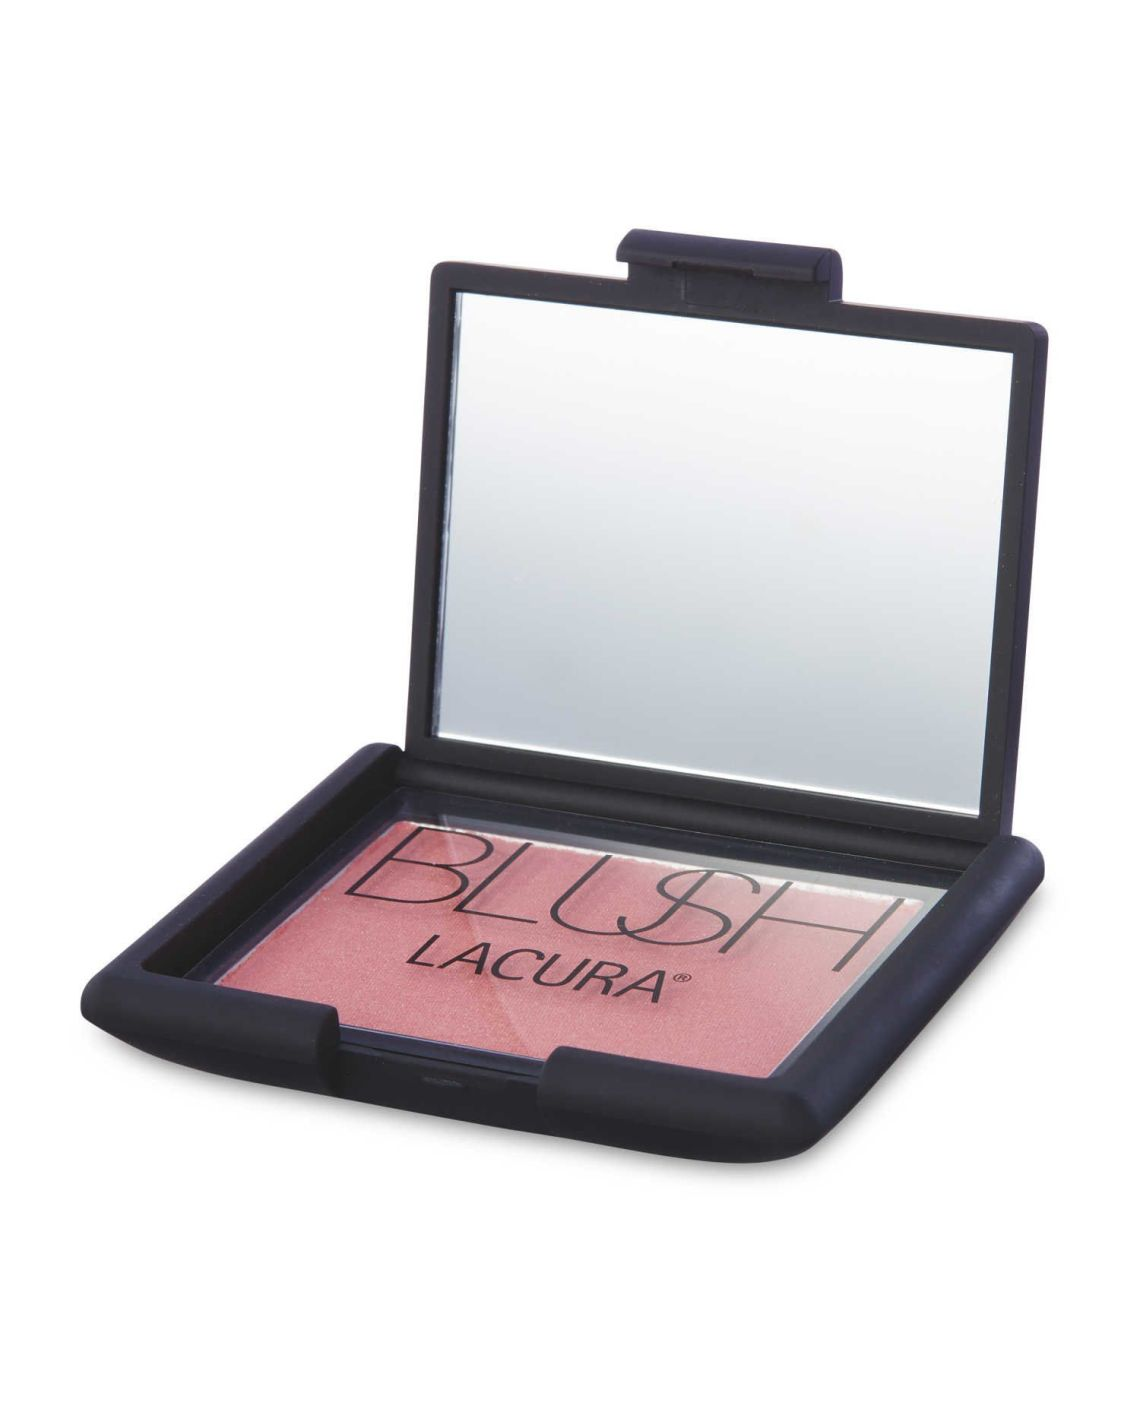 The Lacura Climax Blush, £5.99, promises flushed cheeks with a touch of shimmer.